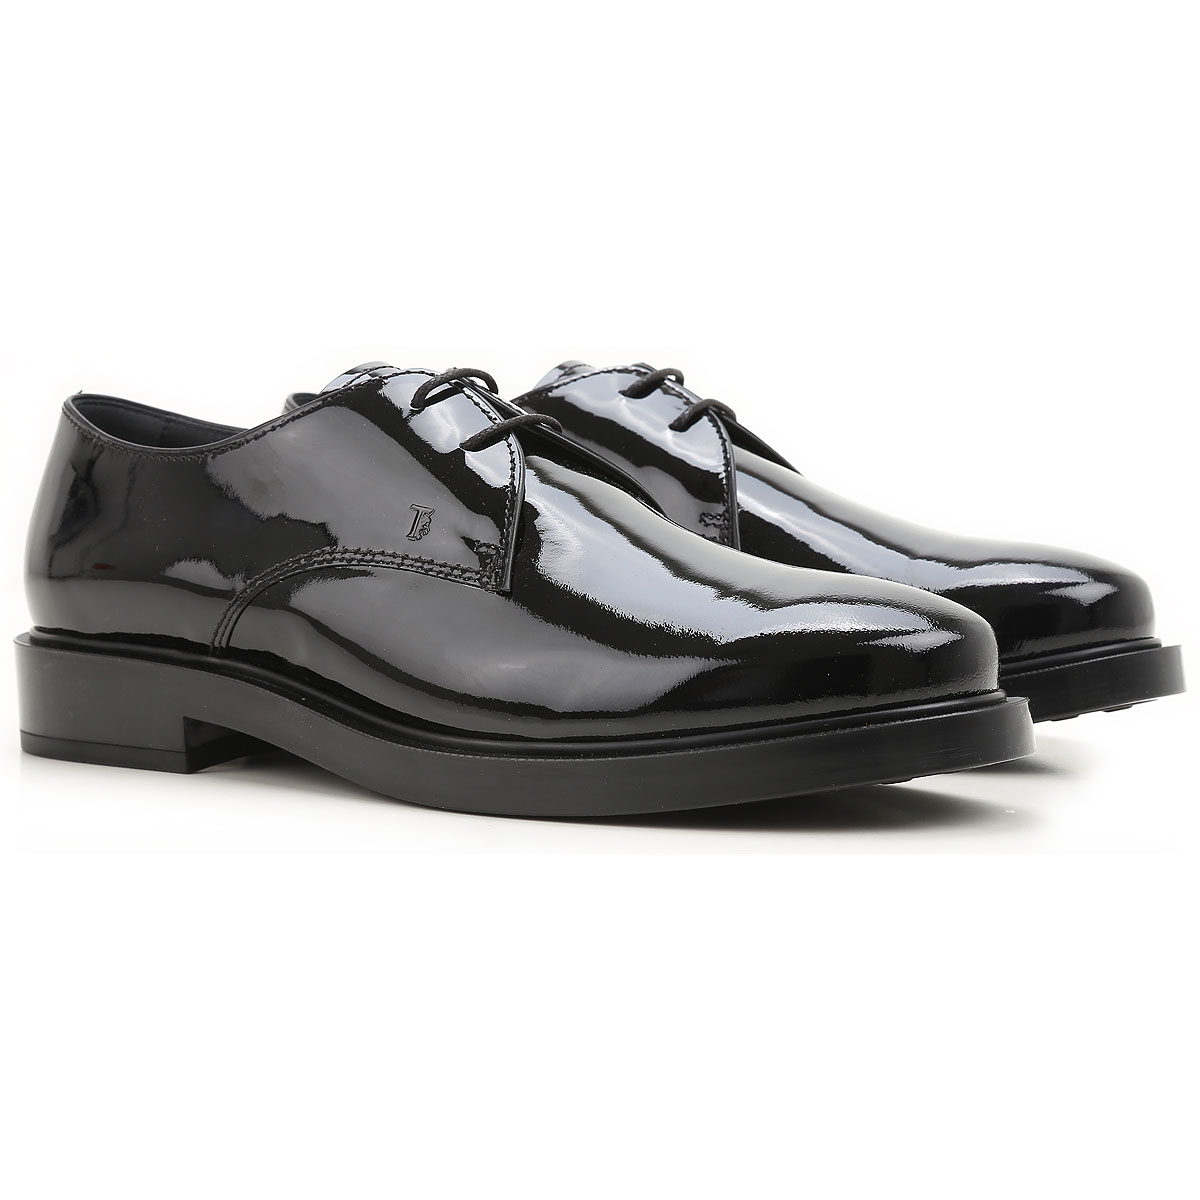 Tods Womens Shoes in Outlet Black USA - GOOFASH